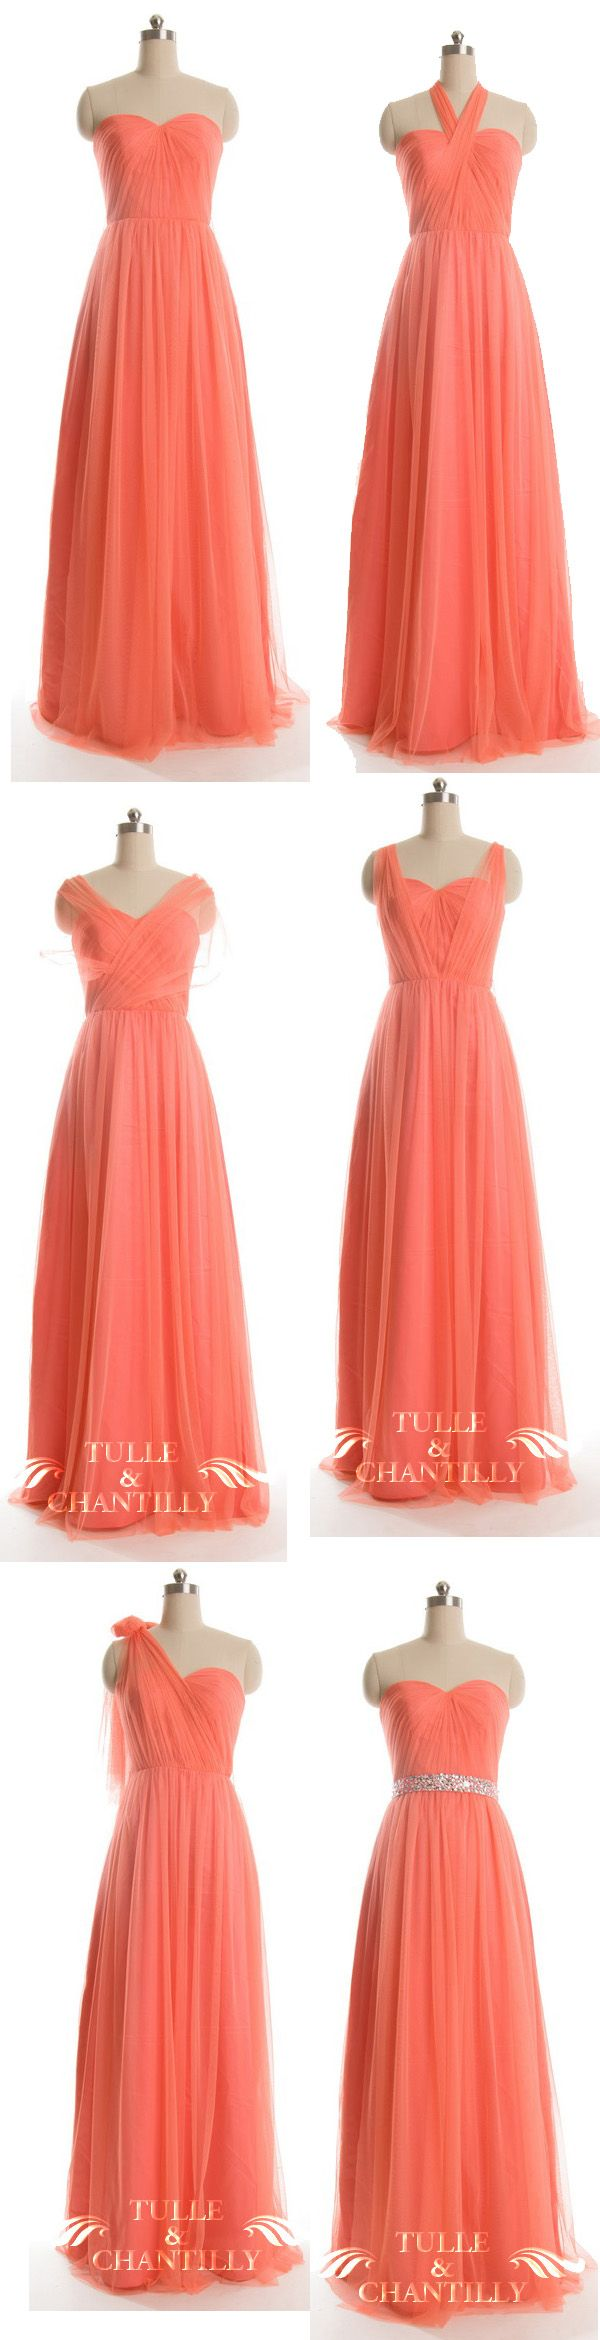 Fall wedidng ideas - Long Bright Orange Multi-wear Convertible Tulle Bridesmaid Dresses - See more at: http://www.tulleandchantilly.com/long-bright-orange-multiwear-convertible-tulle-dress-p-711.html